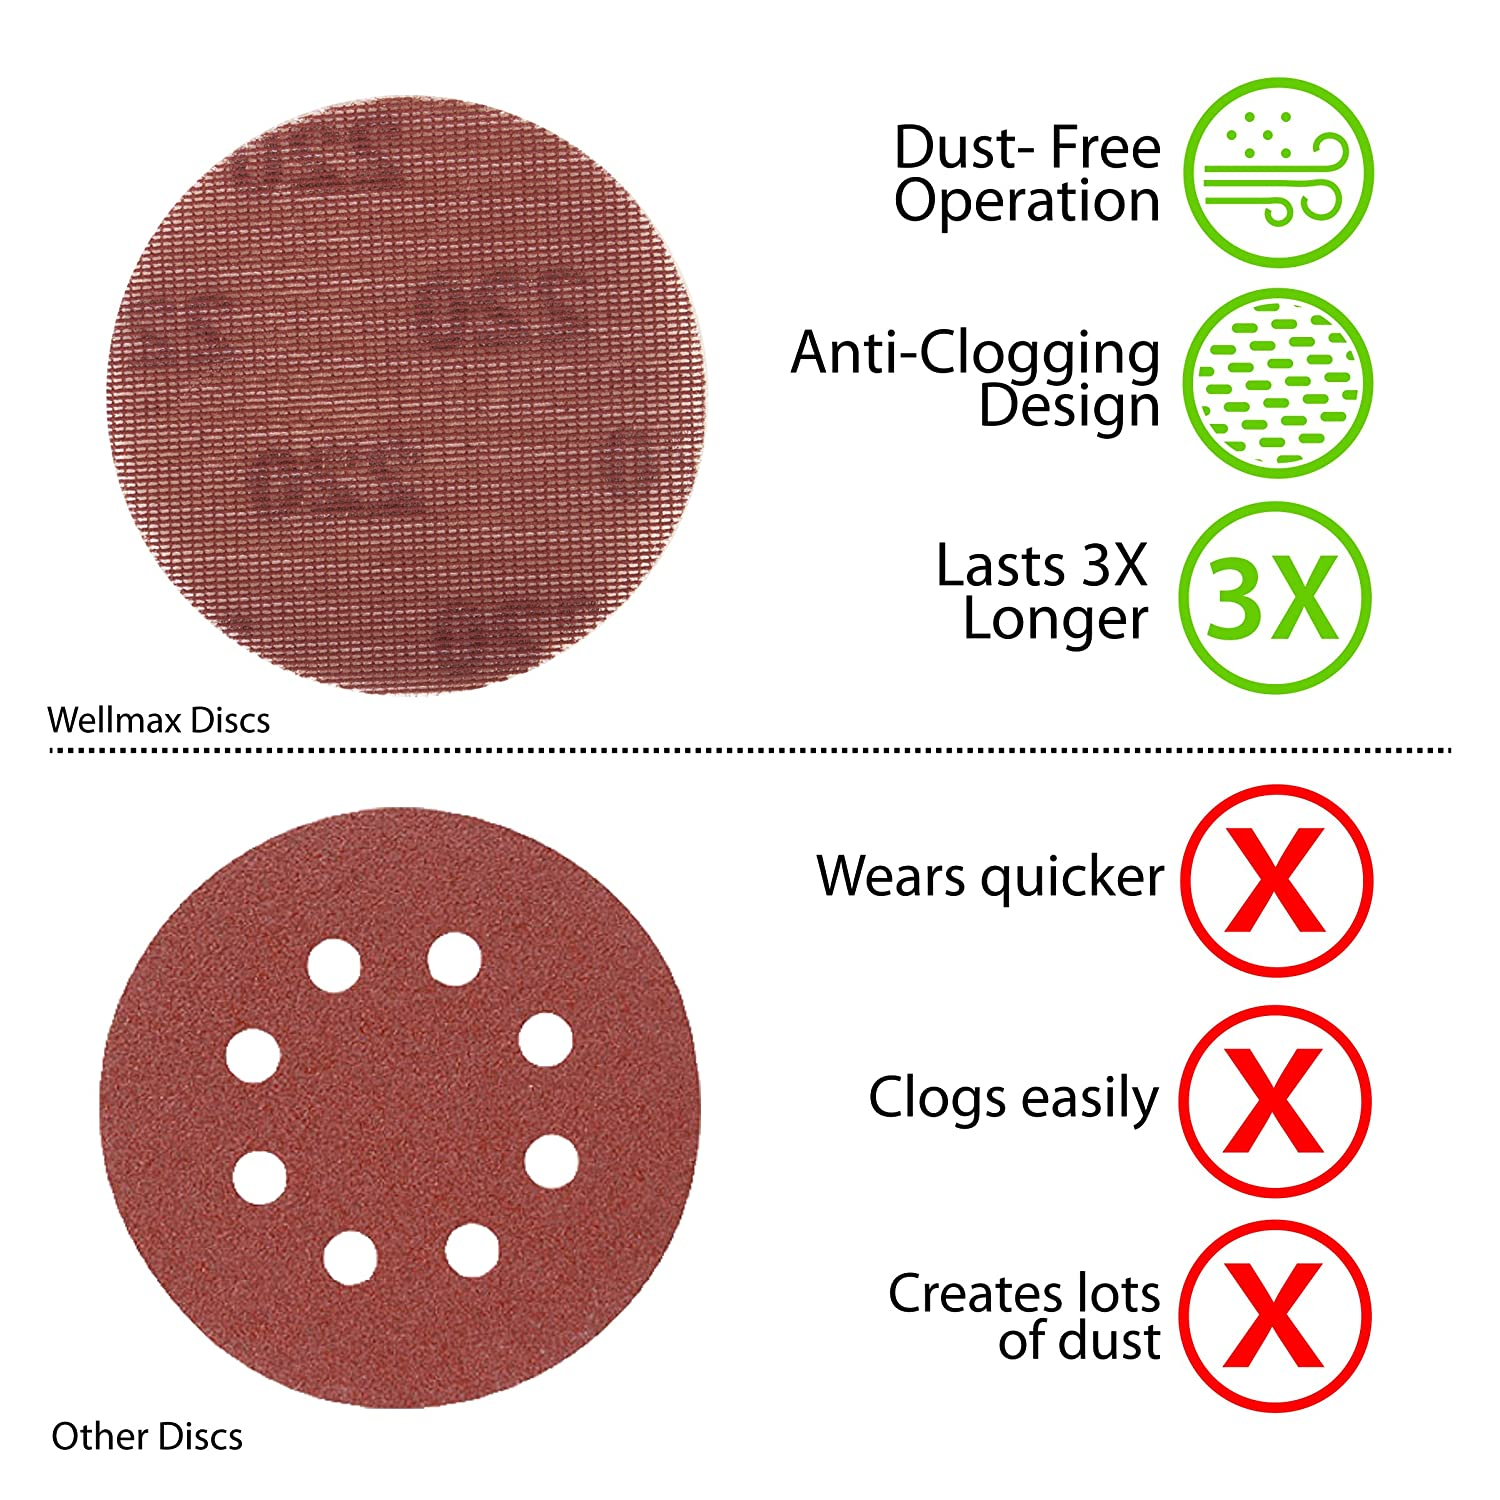 Orbital Sandpaper Pads 125 mm 50 Assortment Pack with 10 pcs Each Grit 200 320,400,600,800 5 Inch Hook and Loop Sanding Discs